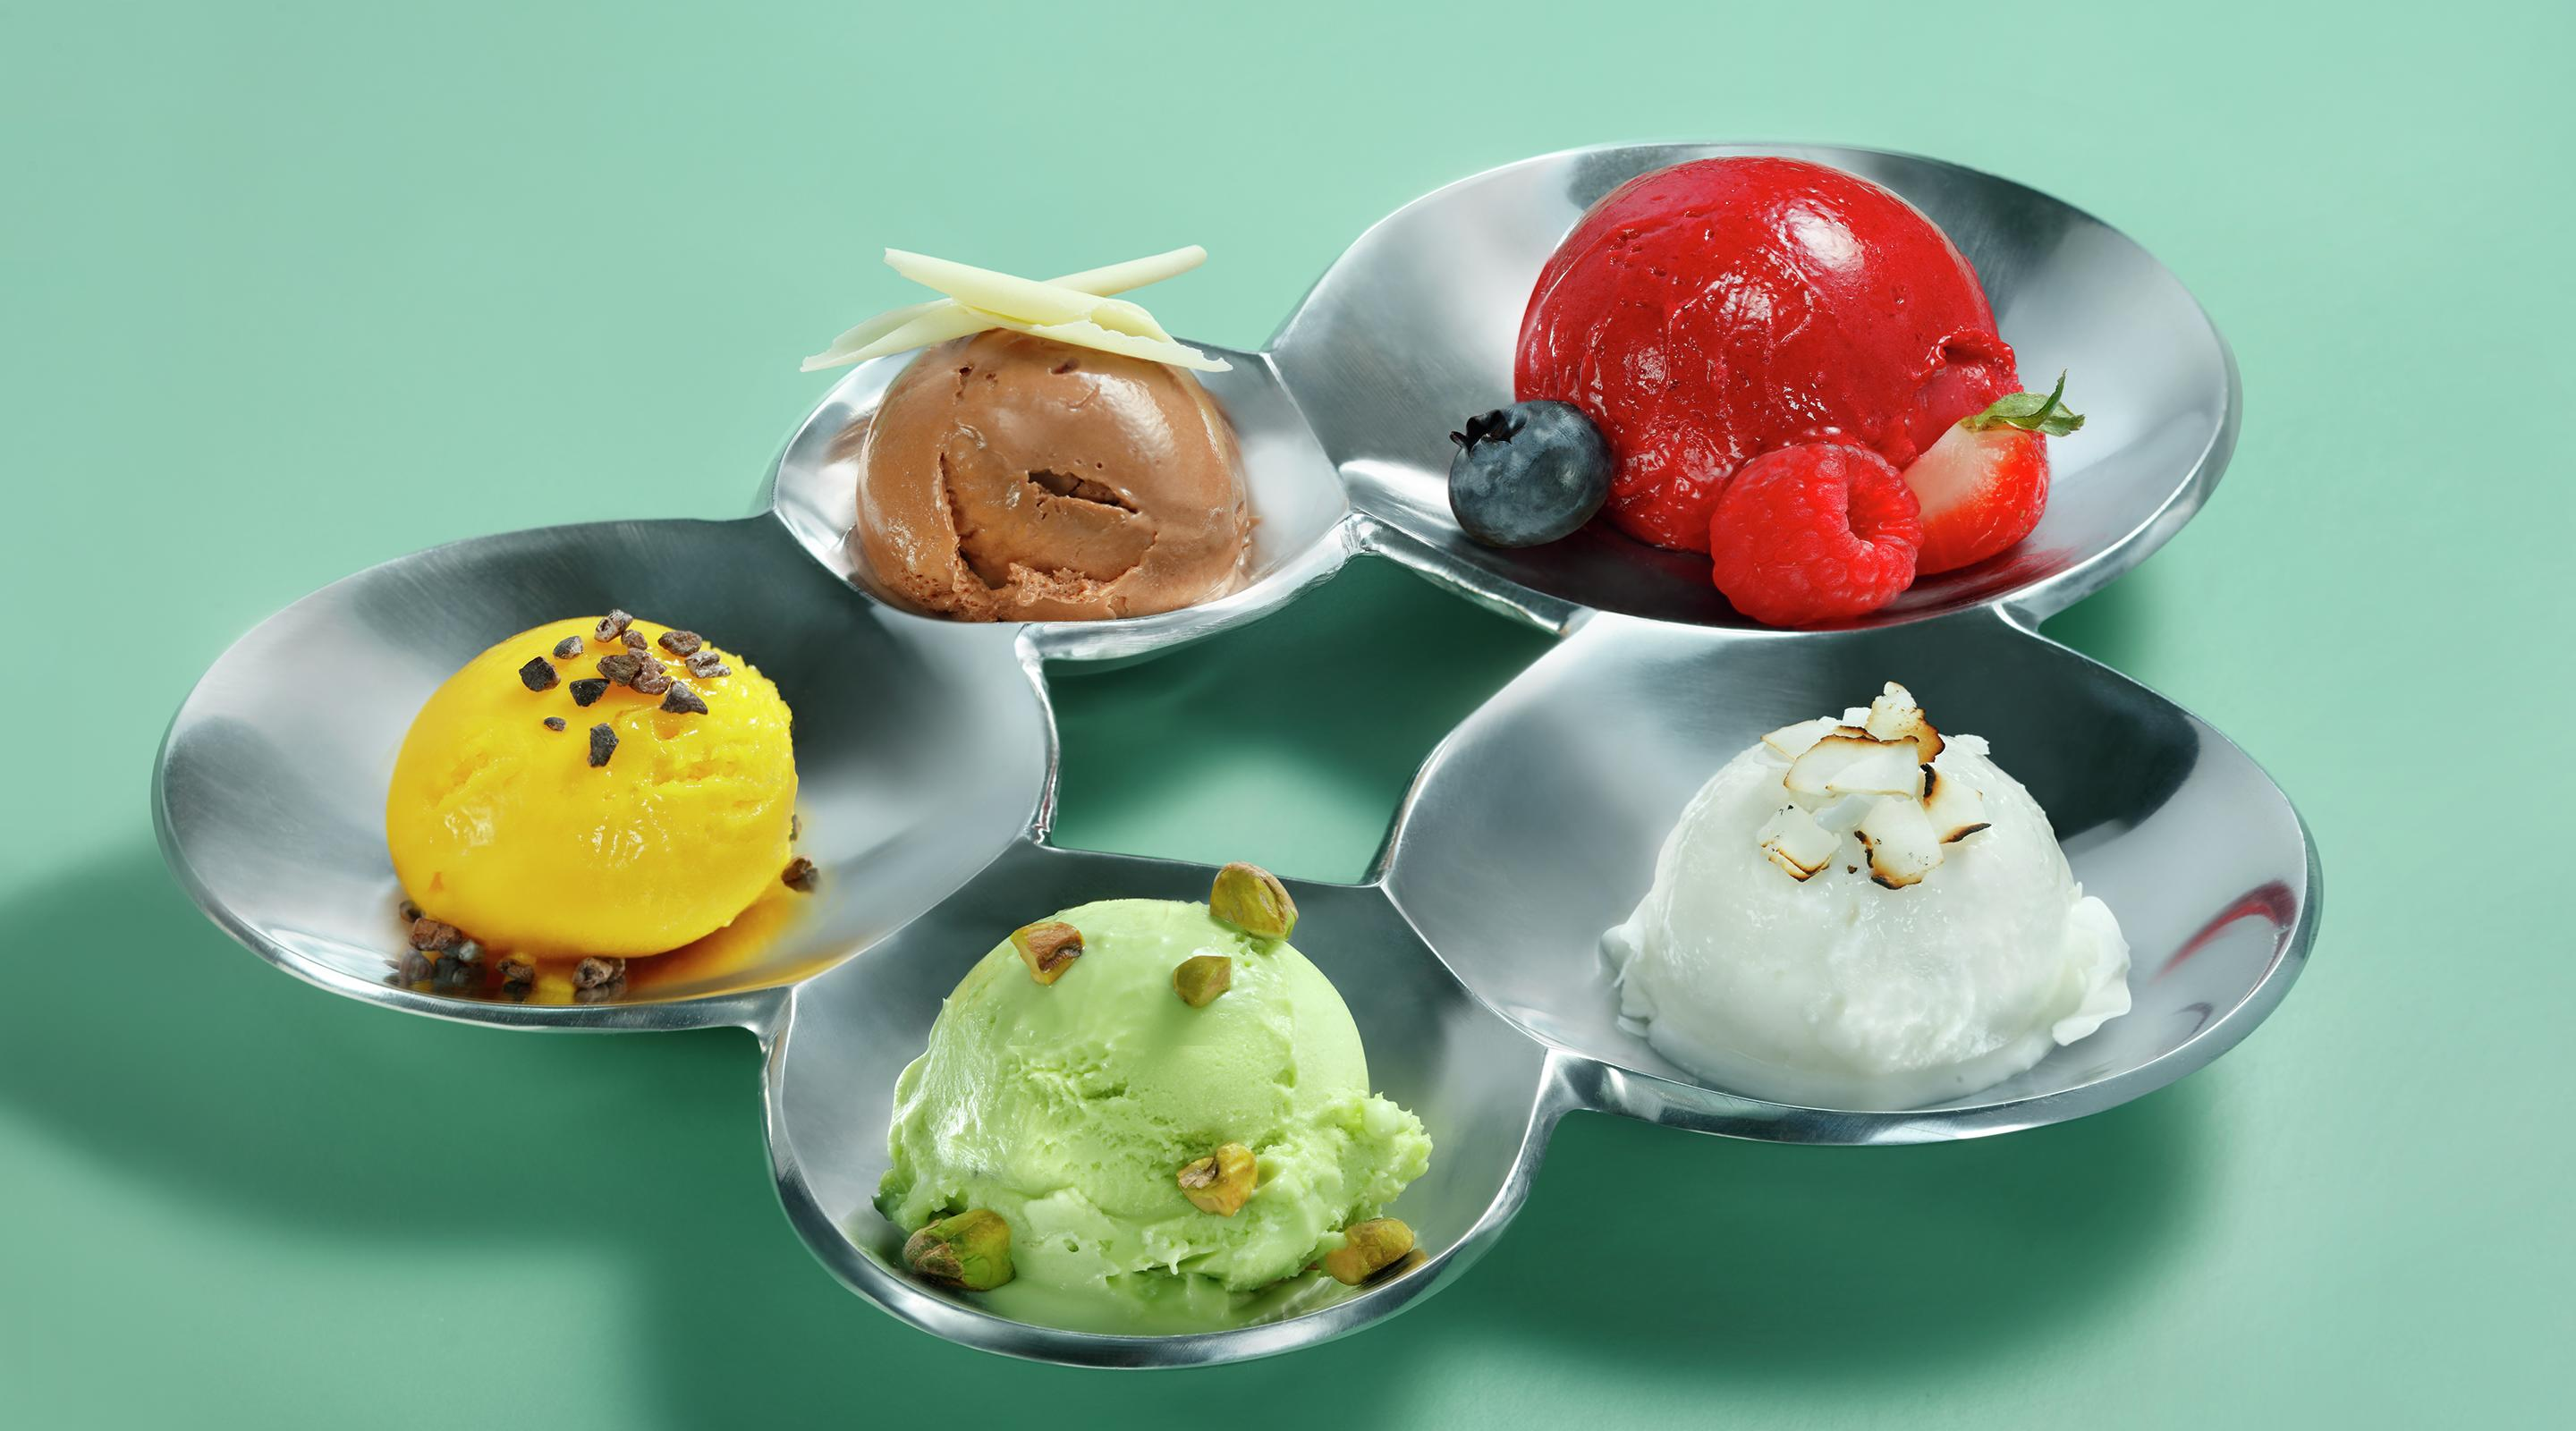 Refresh your palette with a selection of Gelato.